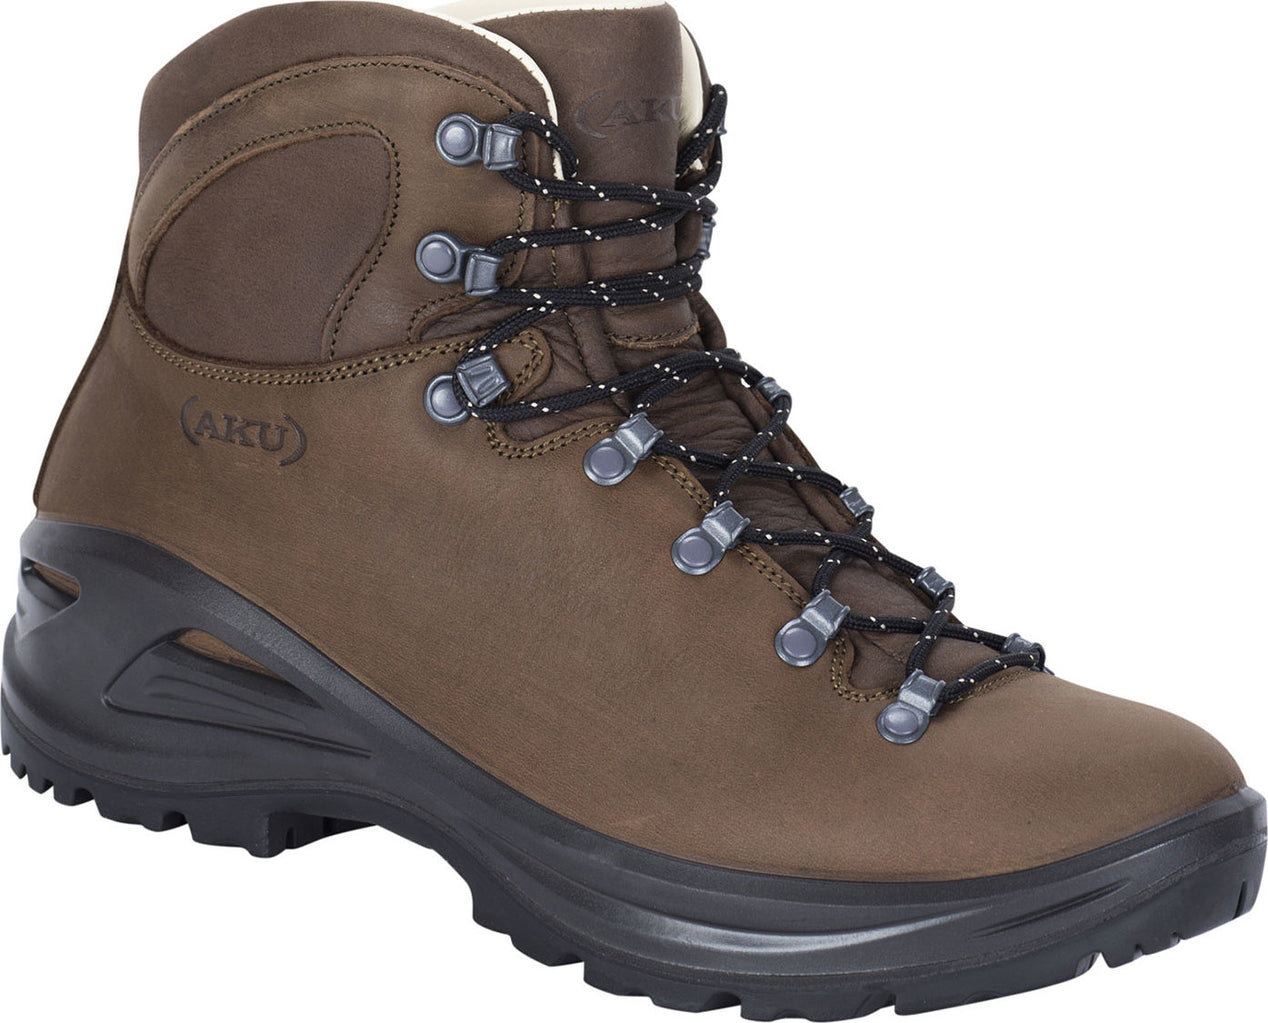 e01079afb65 Aku Tribute Ii Ltr Hiking Boots - Men s